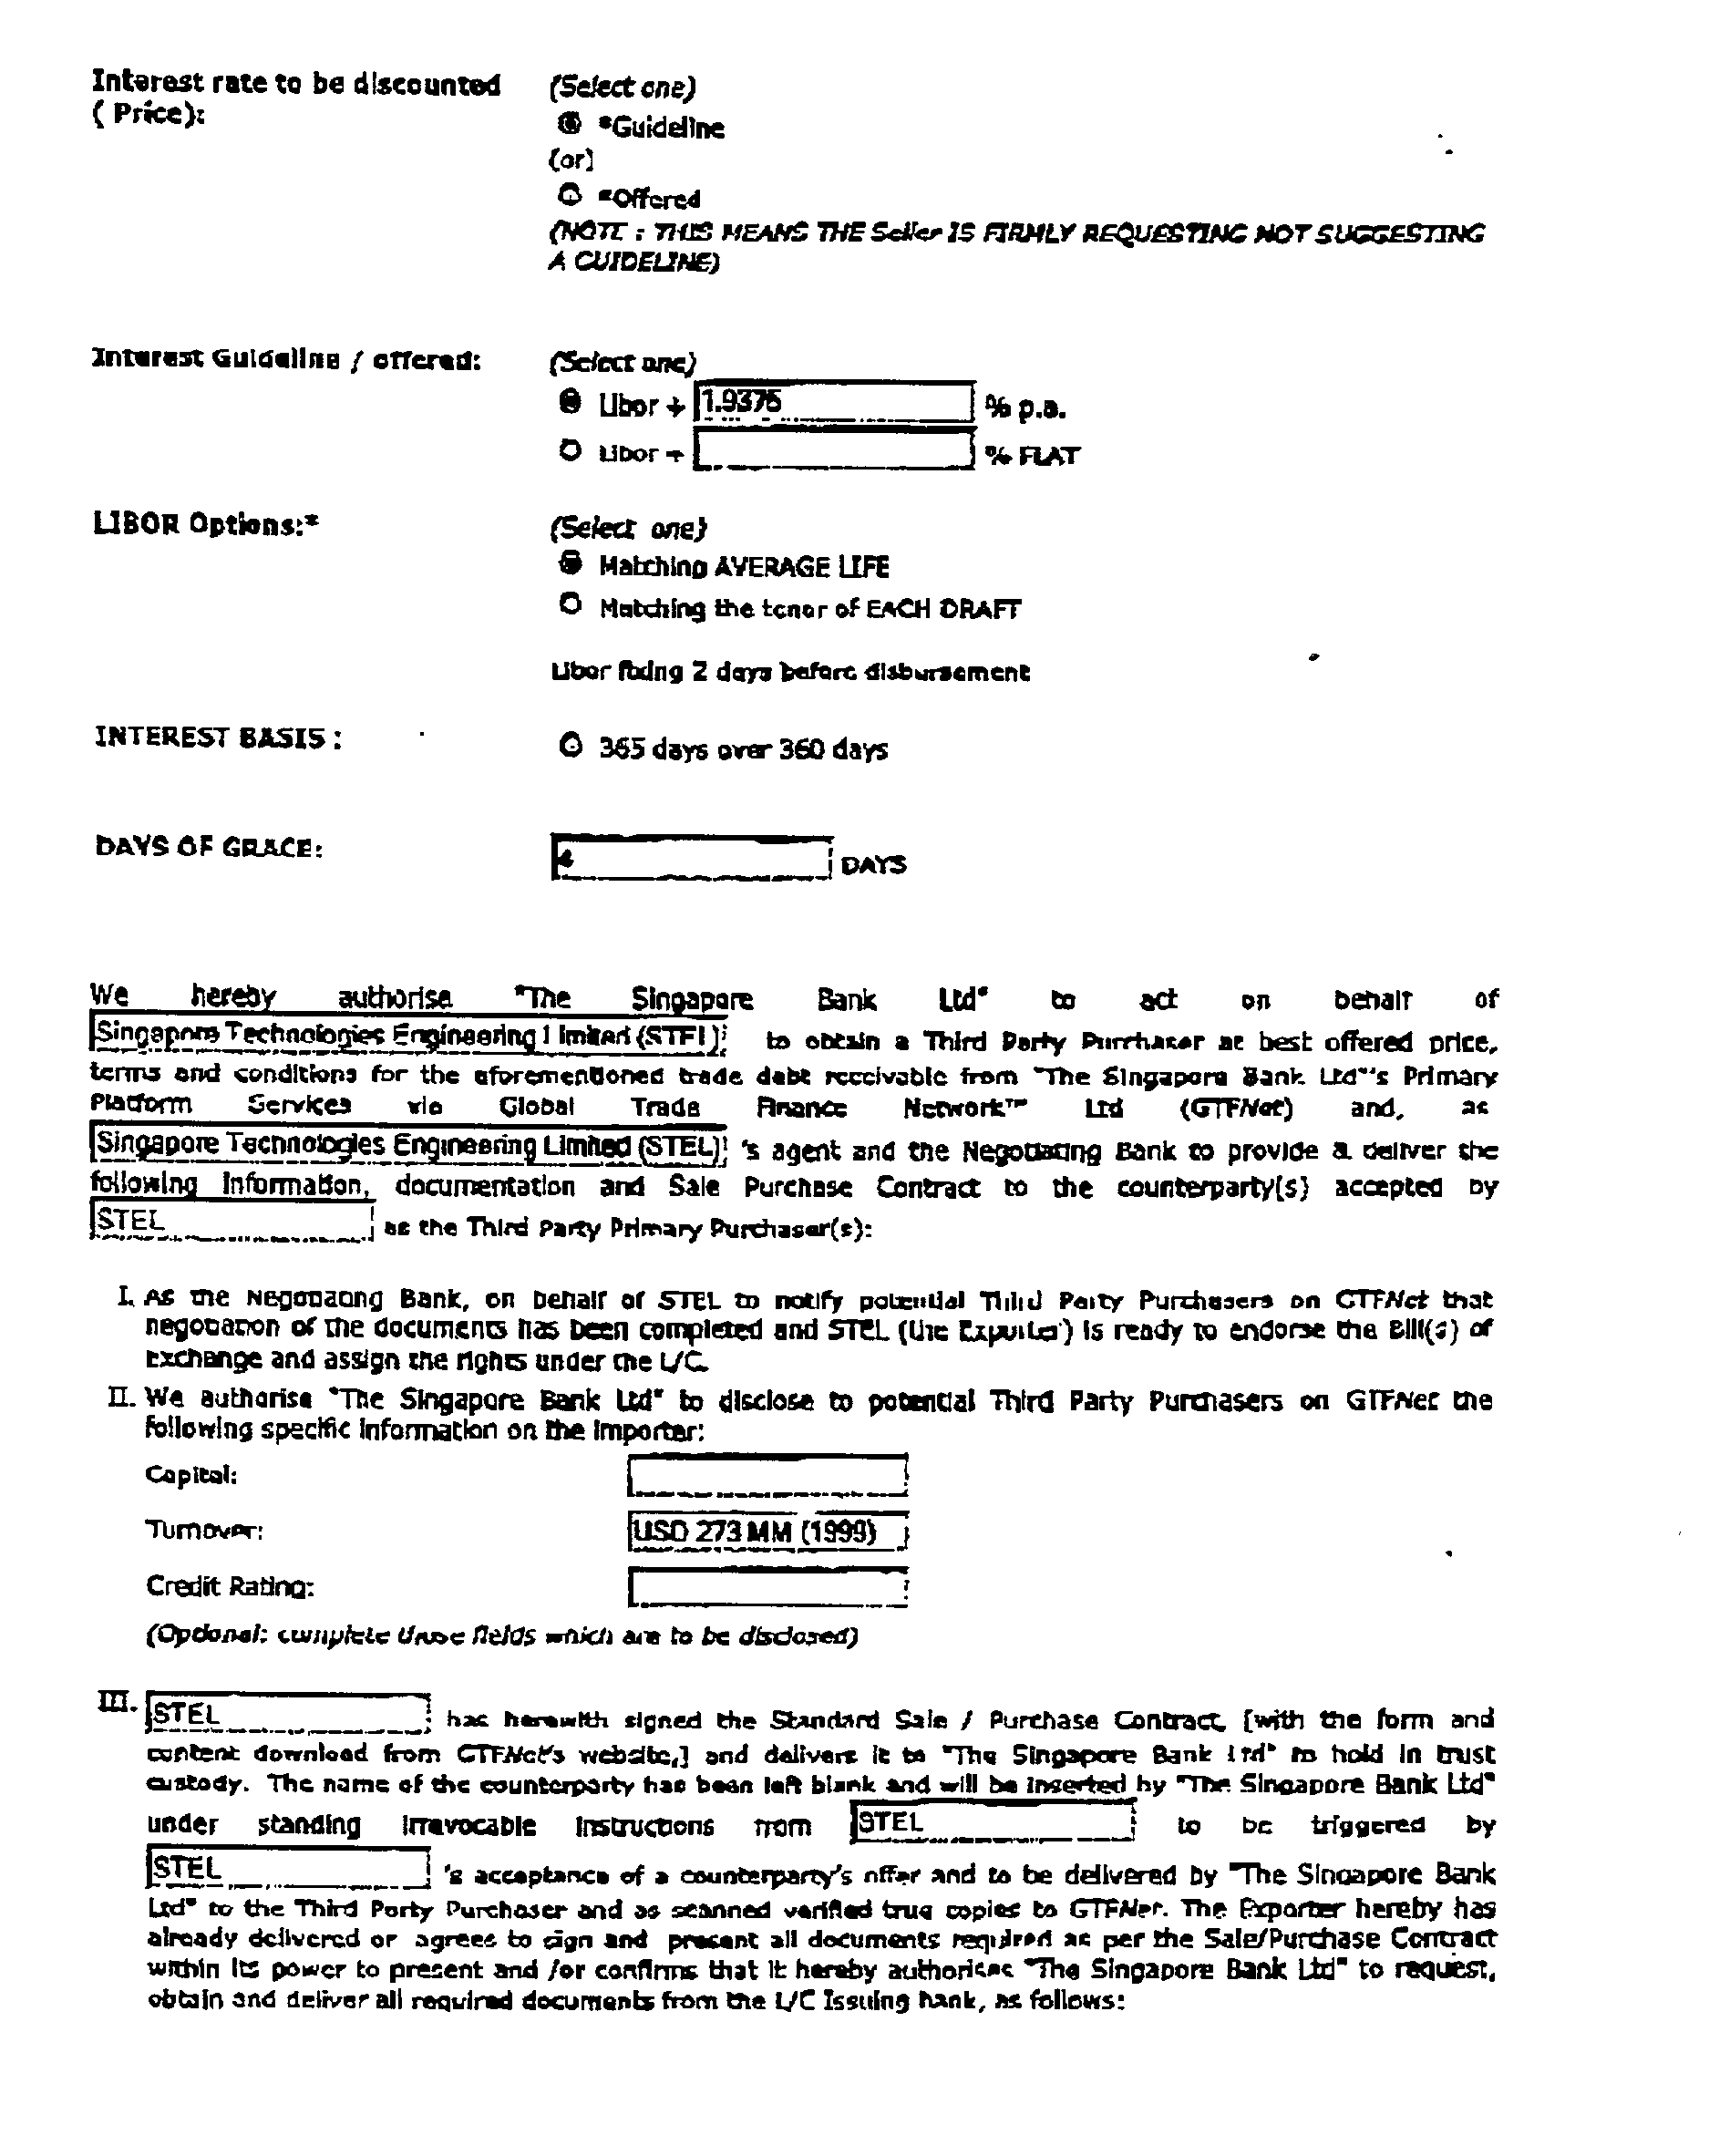 US20030140005A1 - Forfaiting transactions - Google Patents